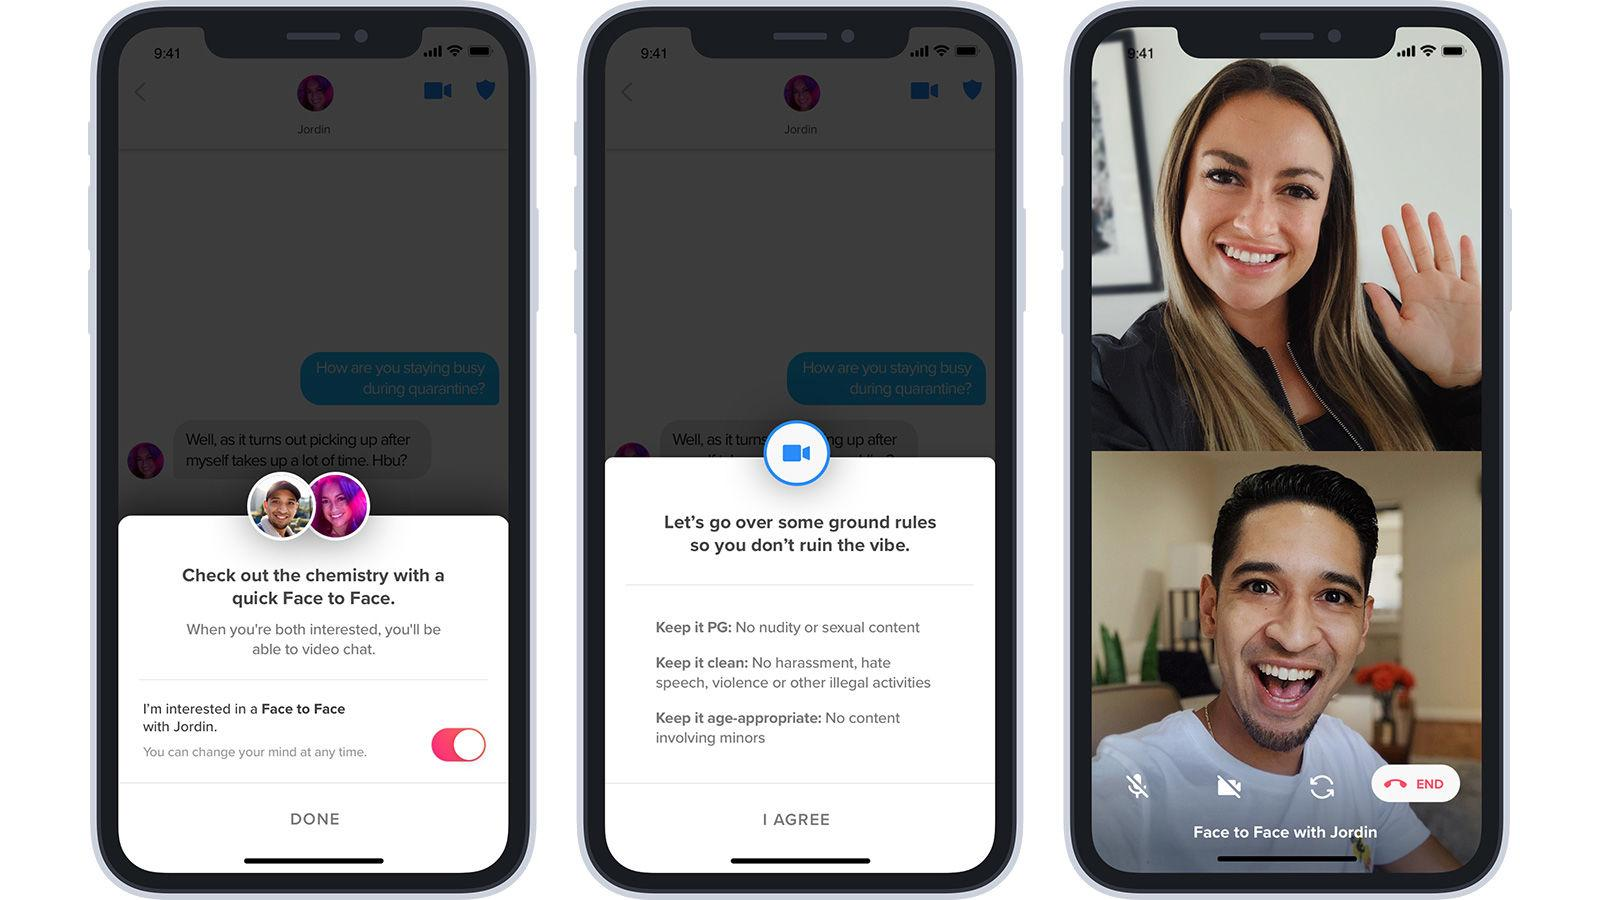 Tinder Face to Face video chat